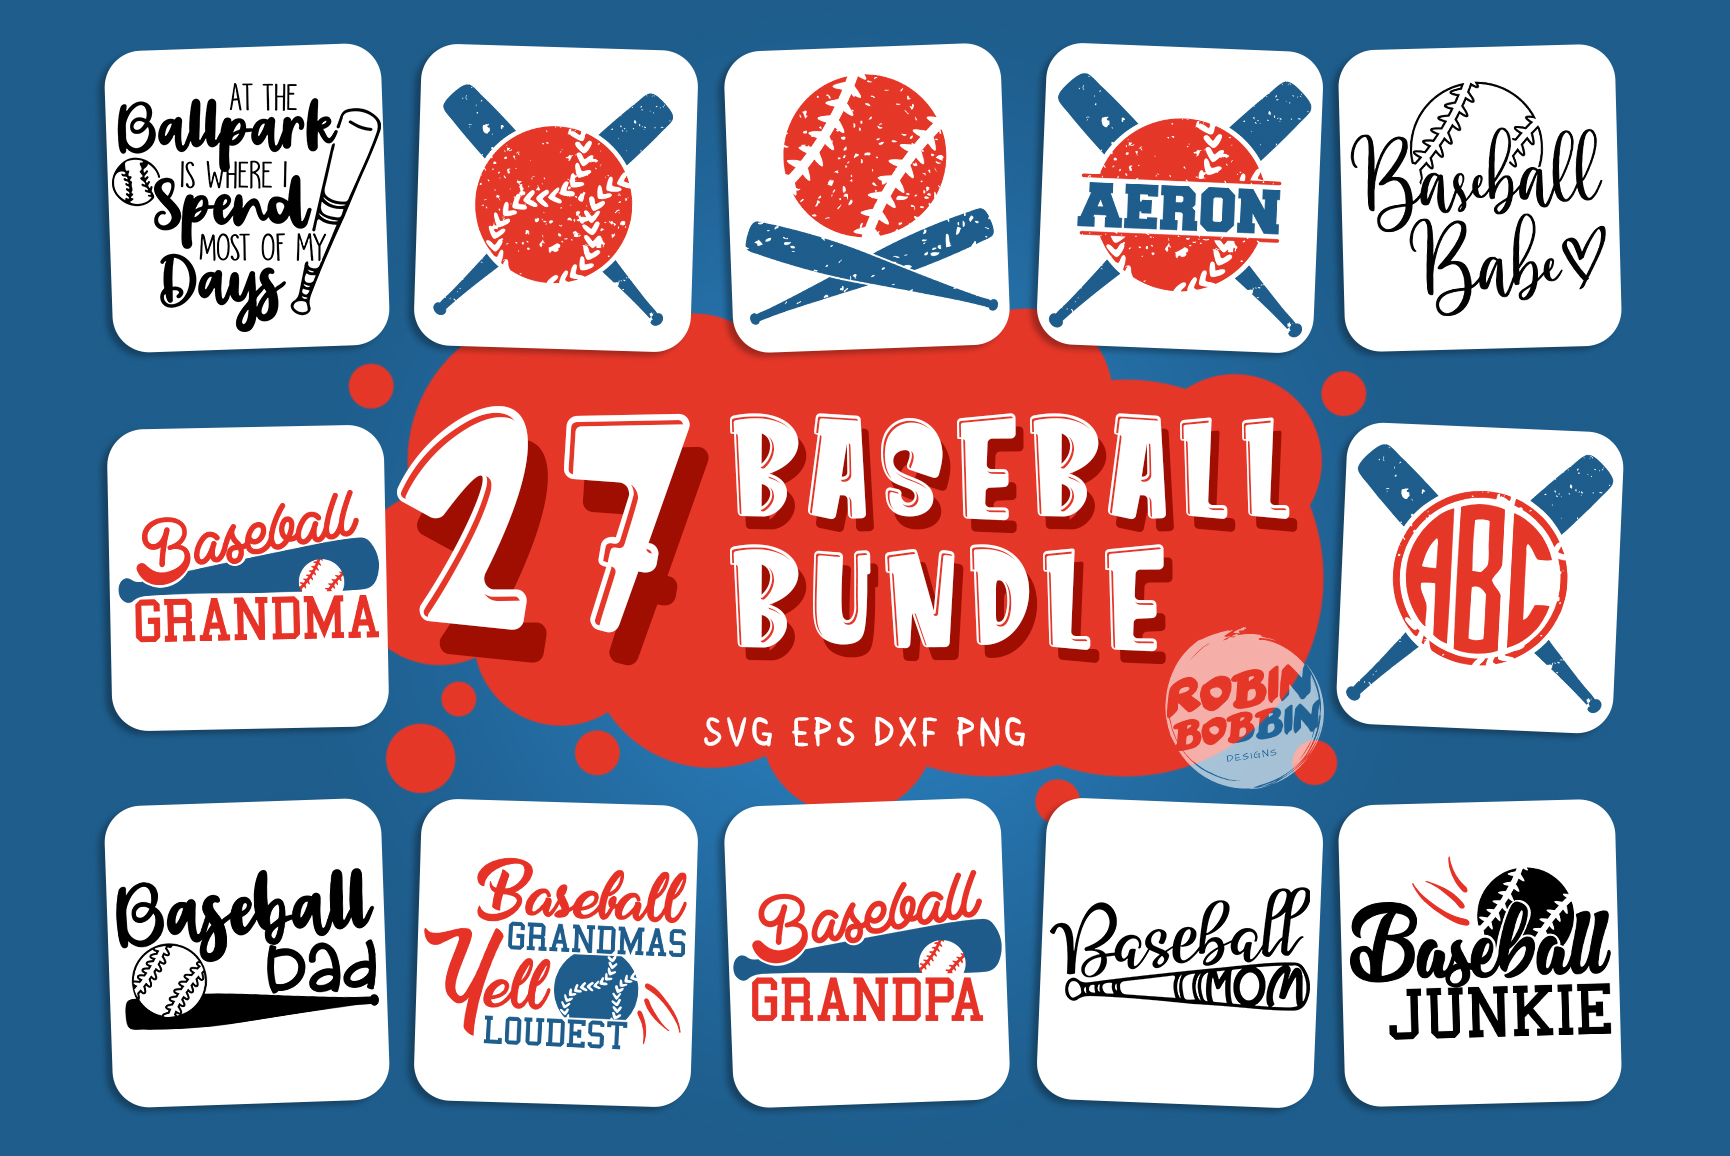 Mega SVG Bundle - Cut Files Bundle - Mega Bundle Over 700 example image 2